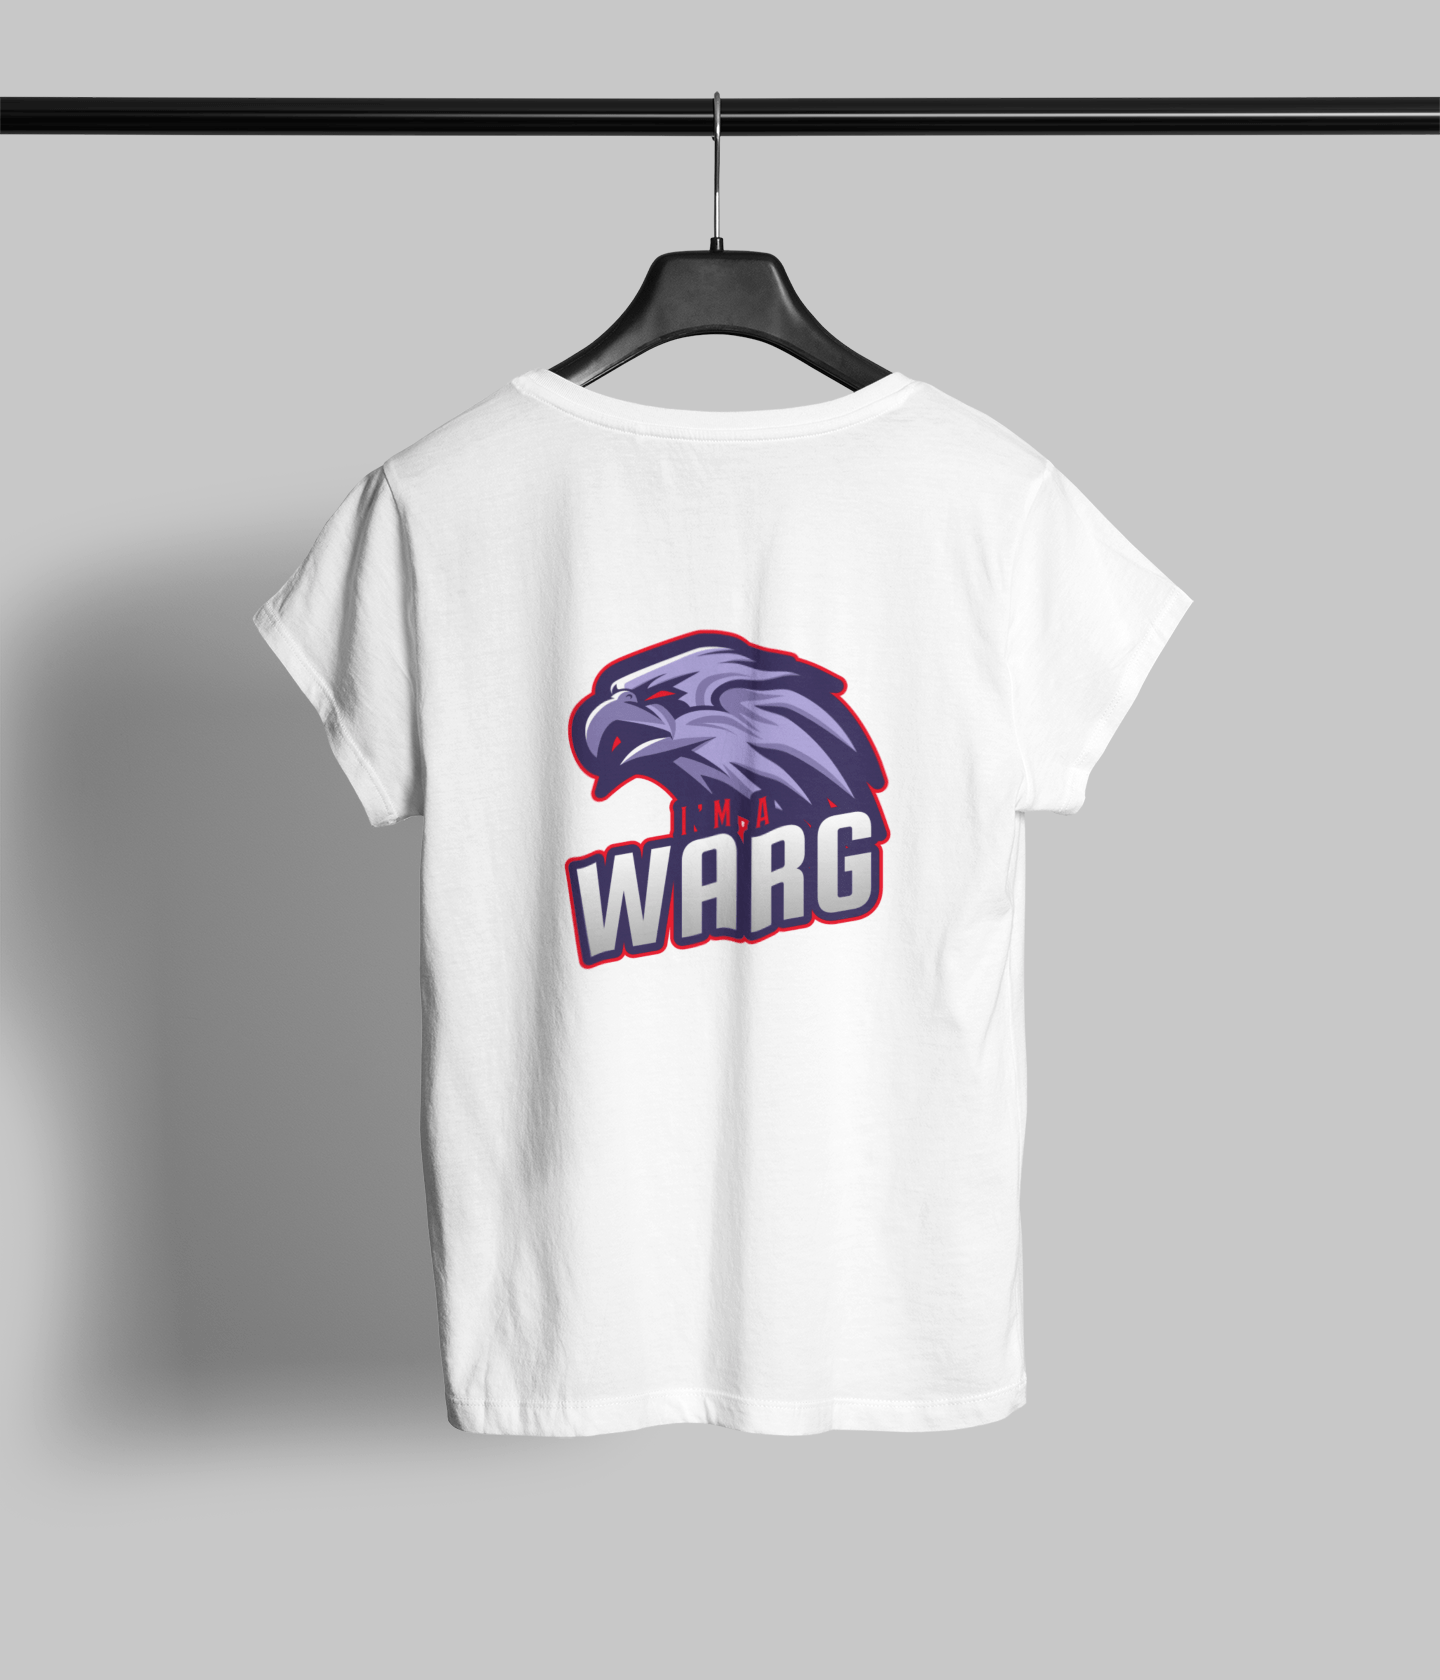 Warg Clothing Printrove White 6